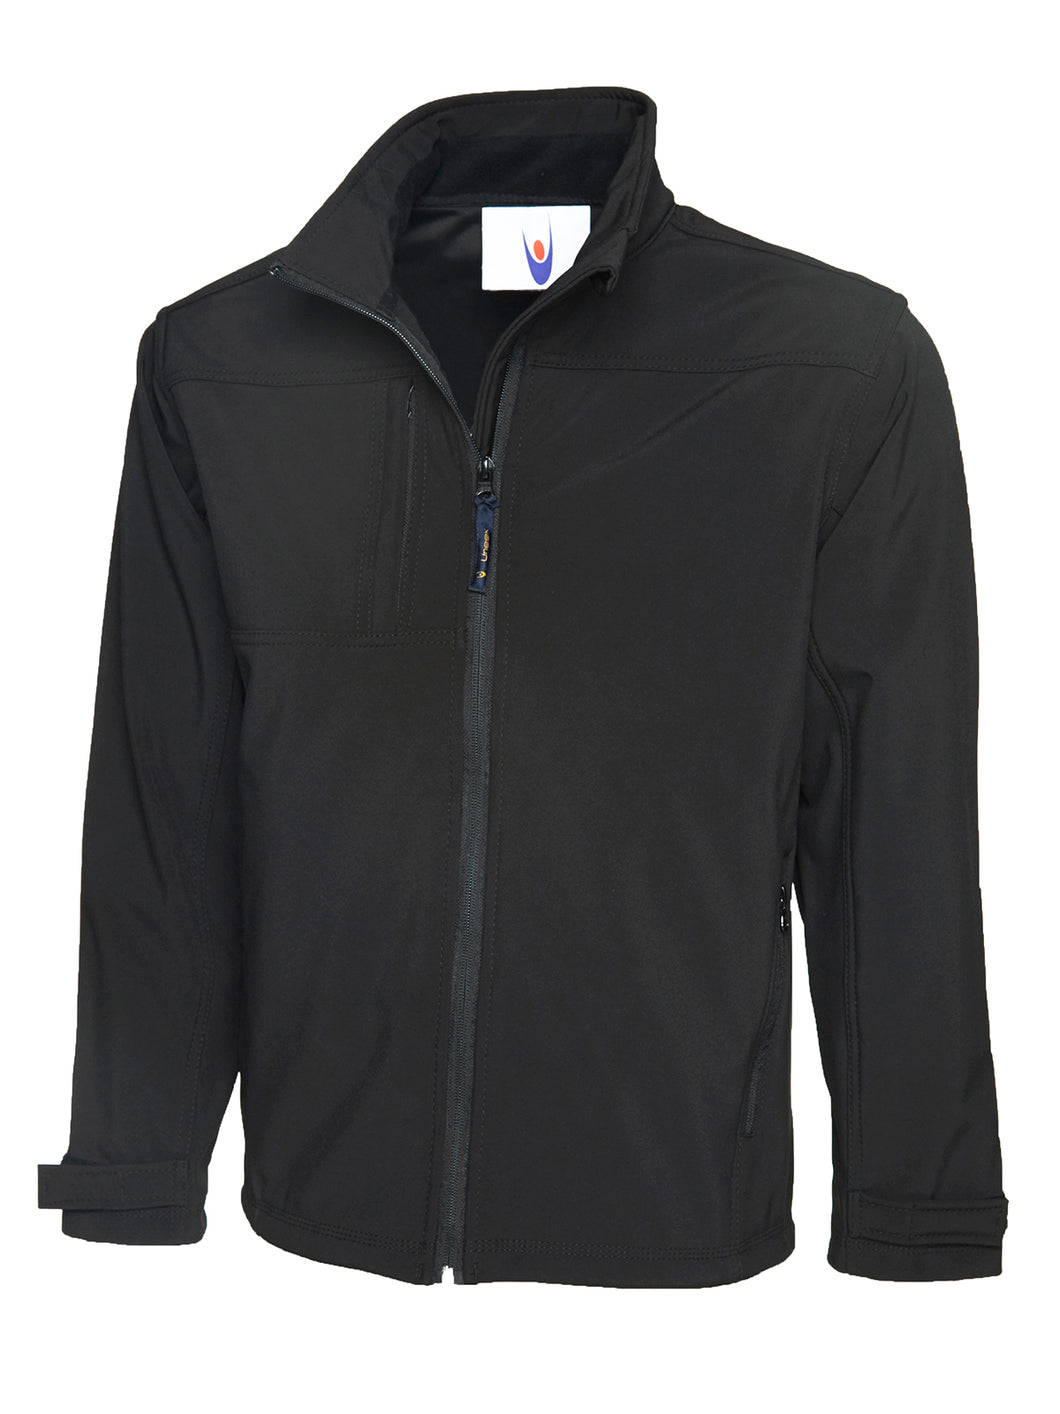 Premium Full Zip Soft Shell Jacket